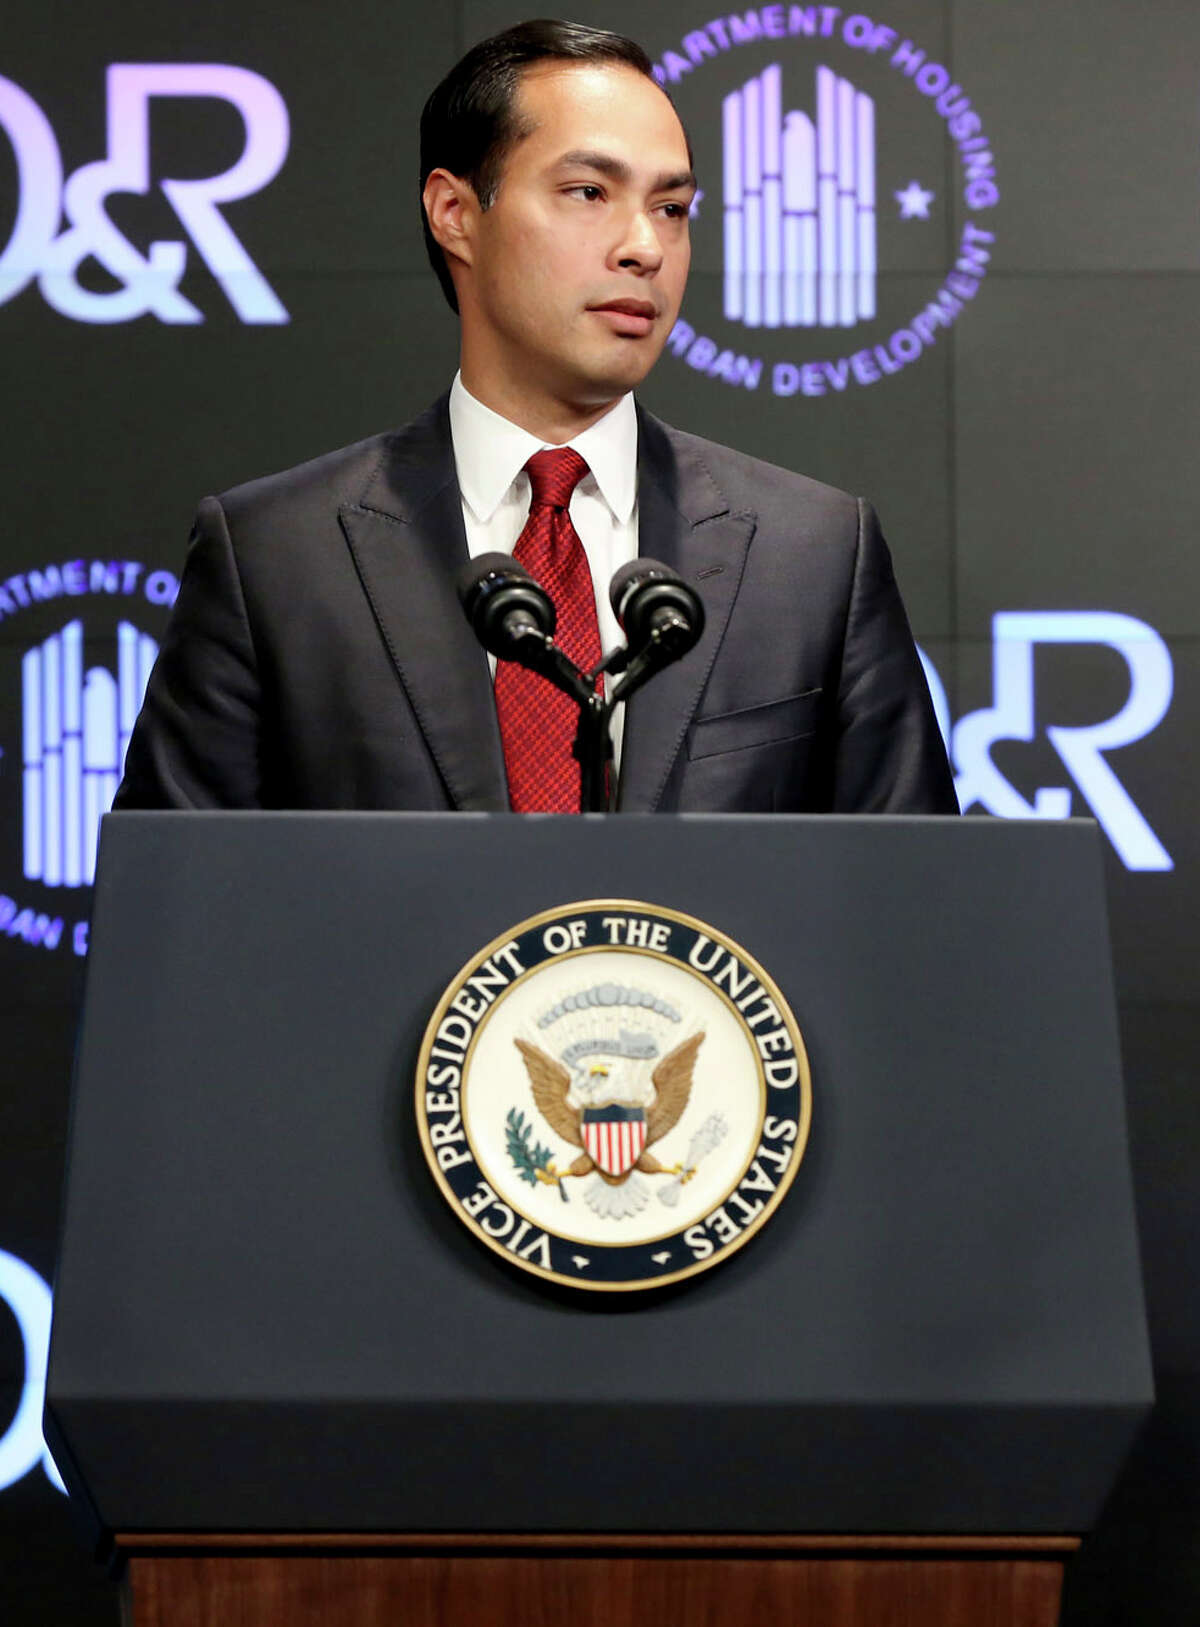 Housing and Urban Development Secretary Julian Castro introduces Vice President Joe Biden at a housing development conference Tuesday, April 7, 2015 in Washington. U.S. Rep. Joaquin Castro says Congress has been sufficiently sensitive to remove words like